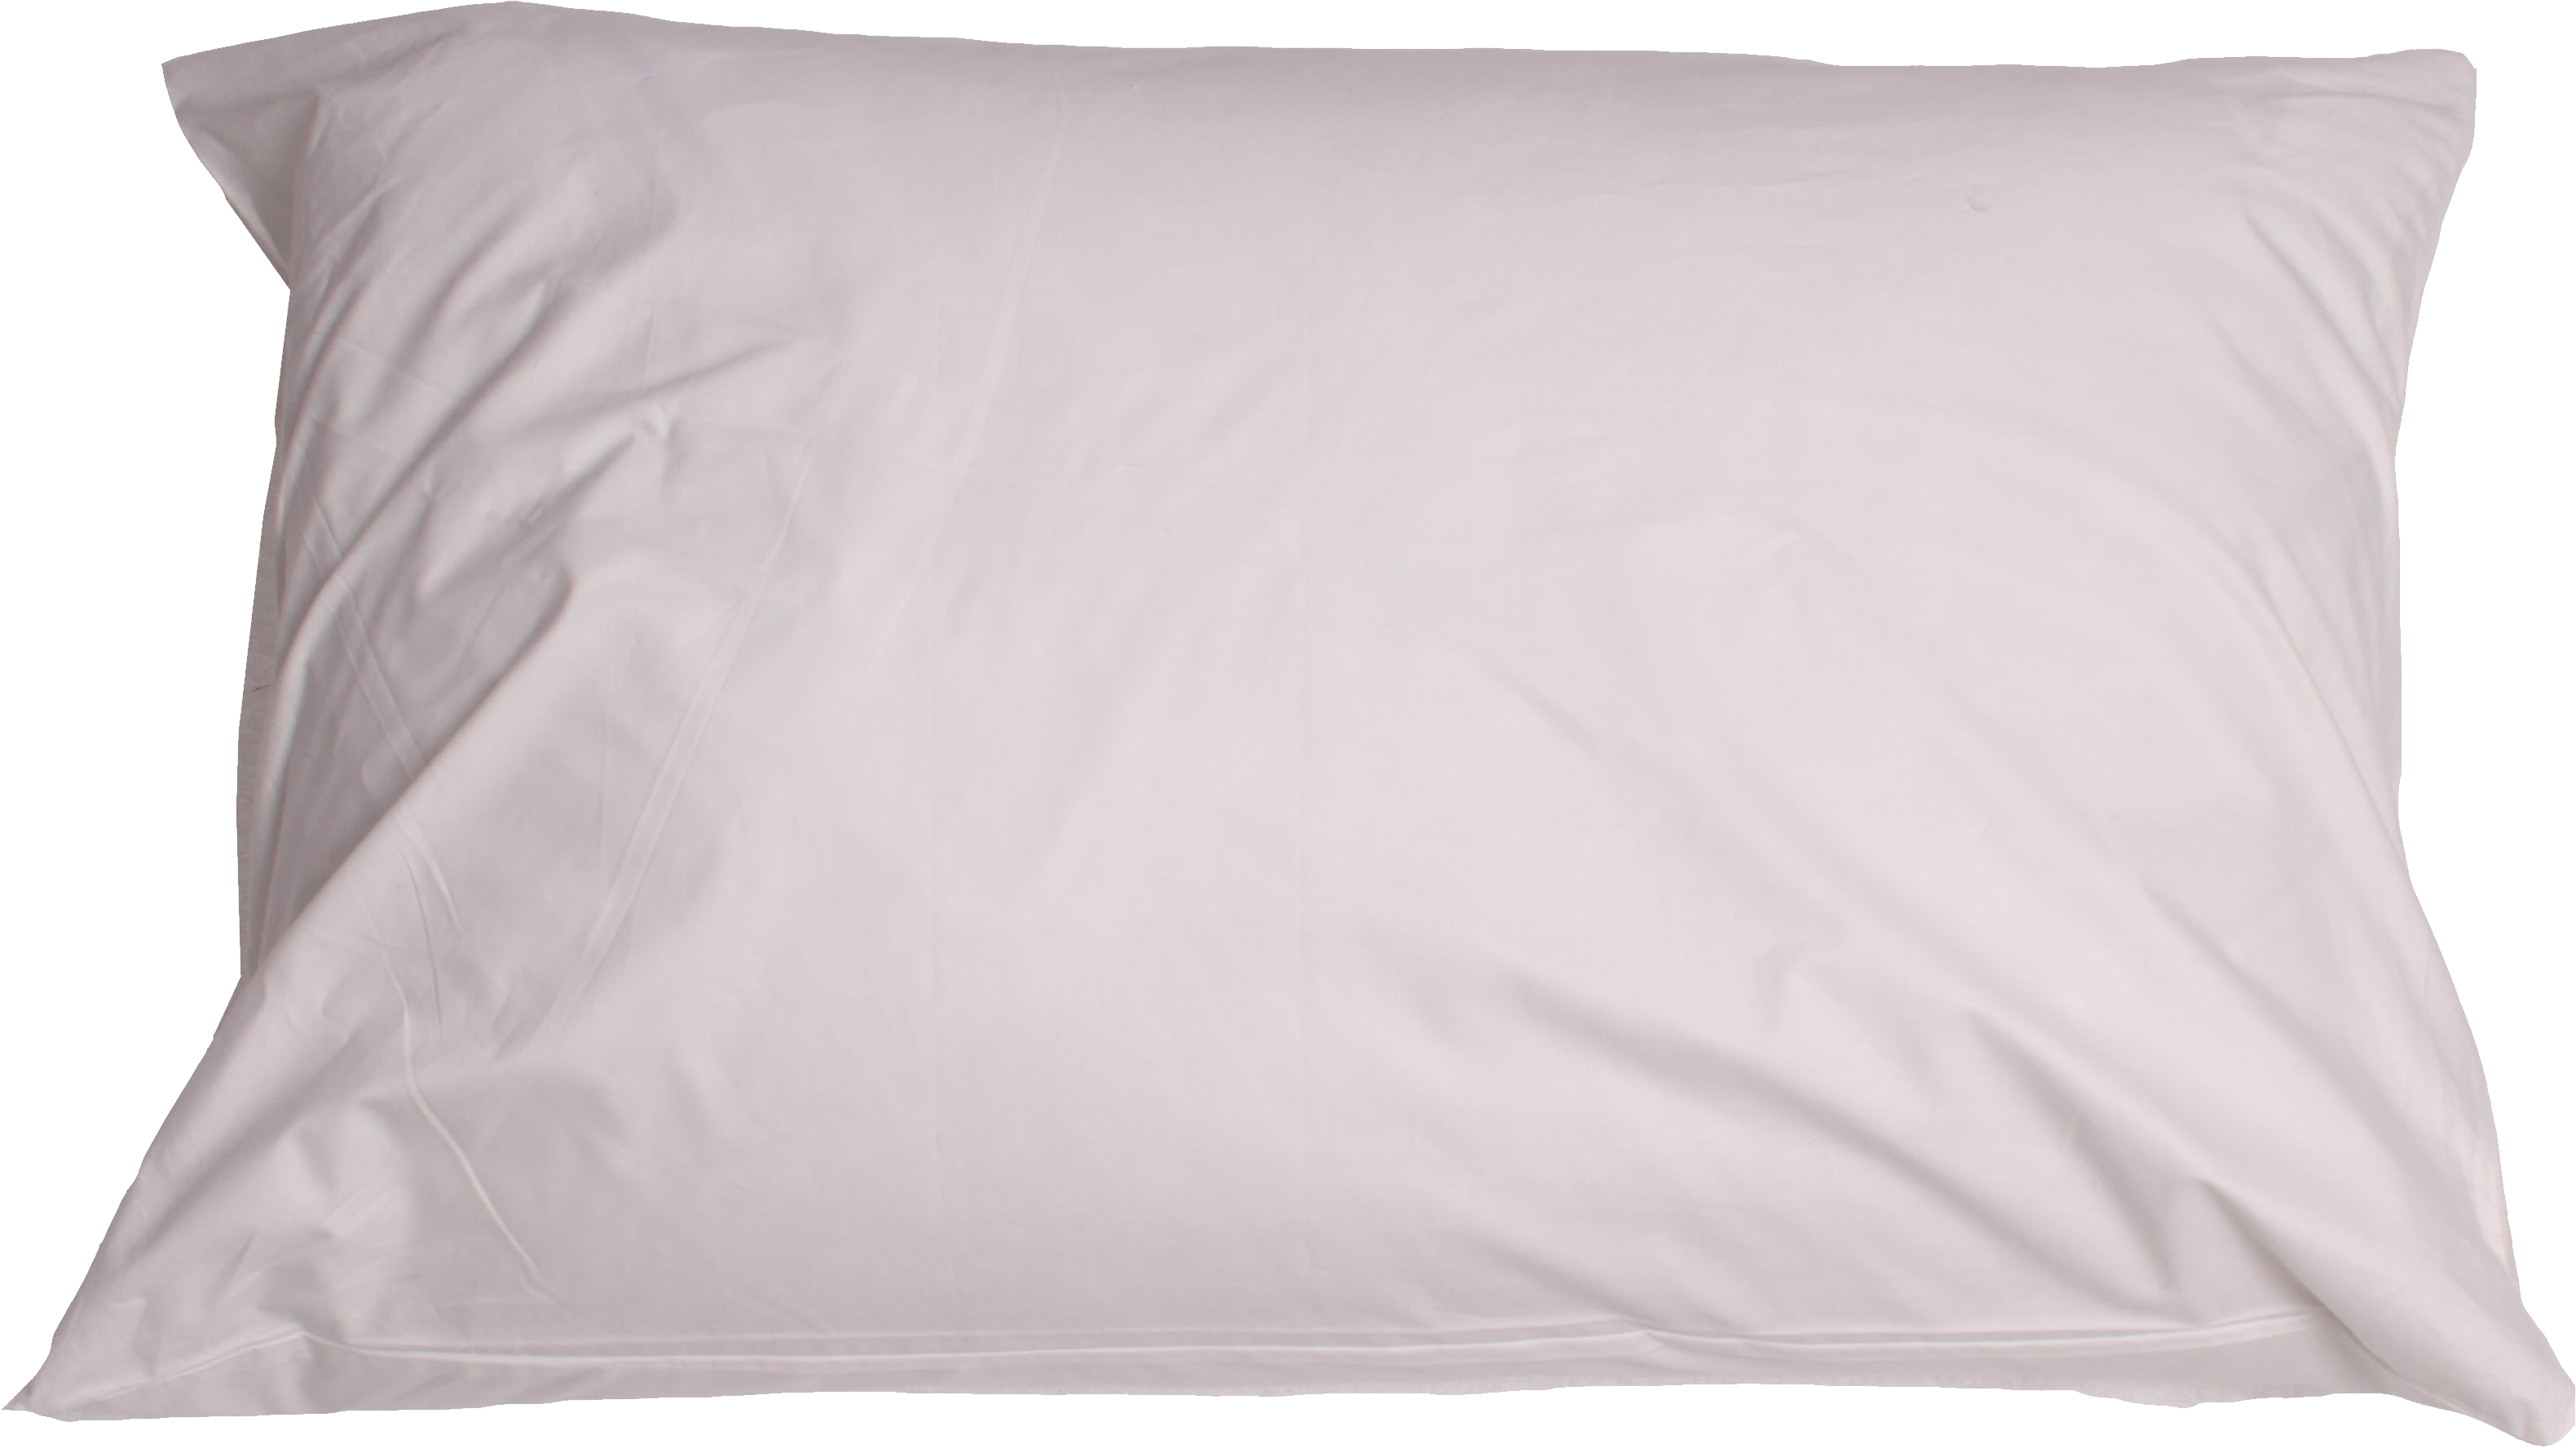 Bed, Blanket, Pillows Png image #28447